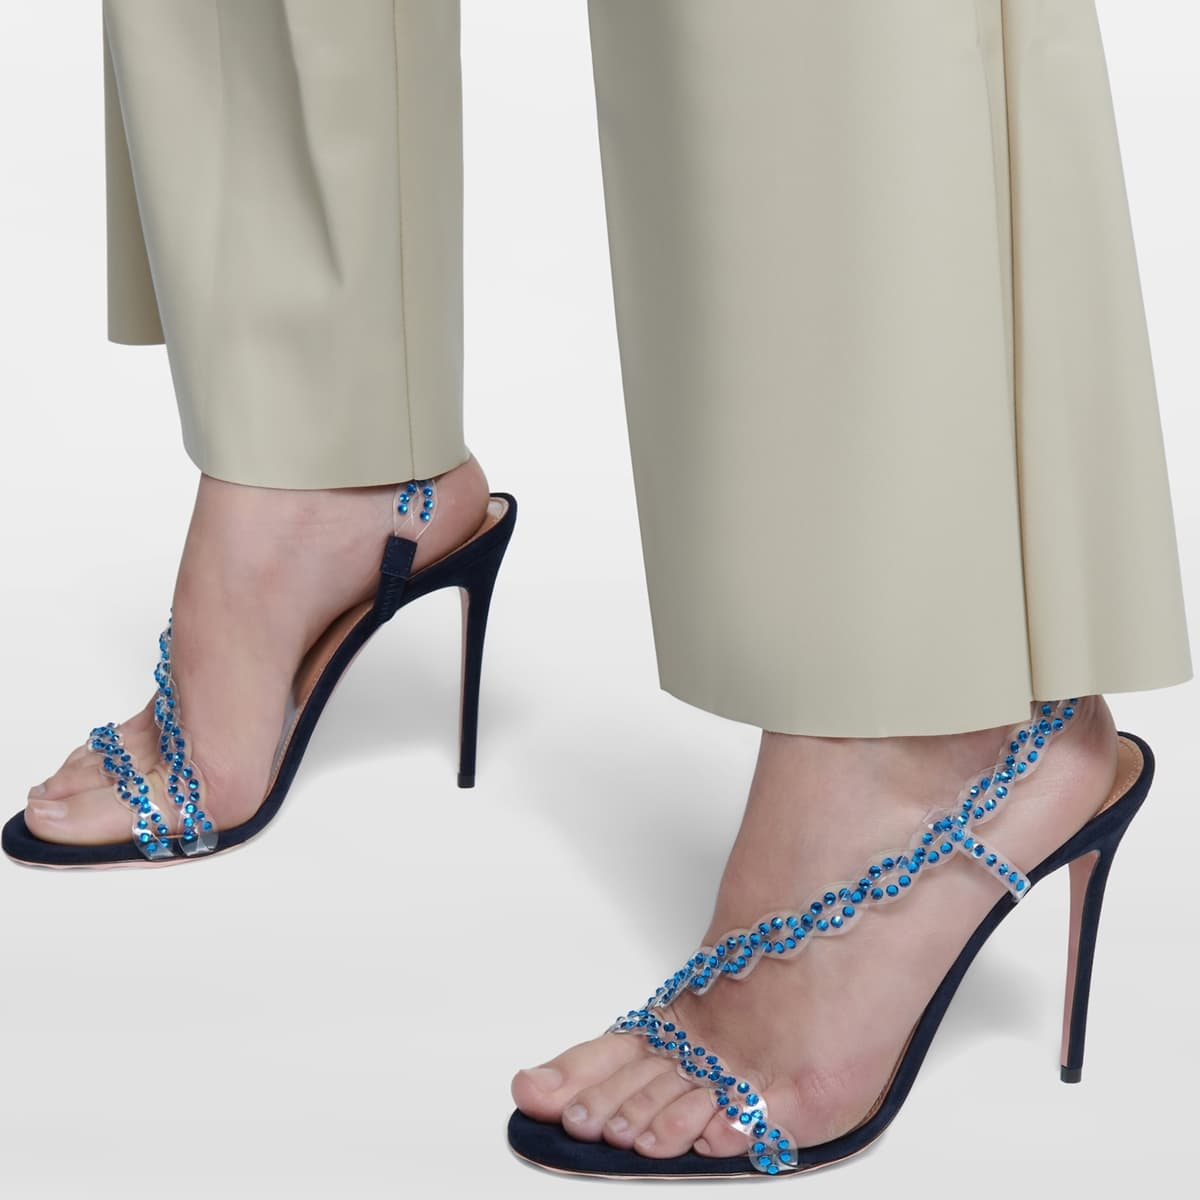 Aquazzura's Heaven sandals are made from a modern mix of inky blue suede and transparent PVC